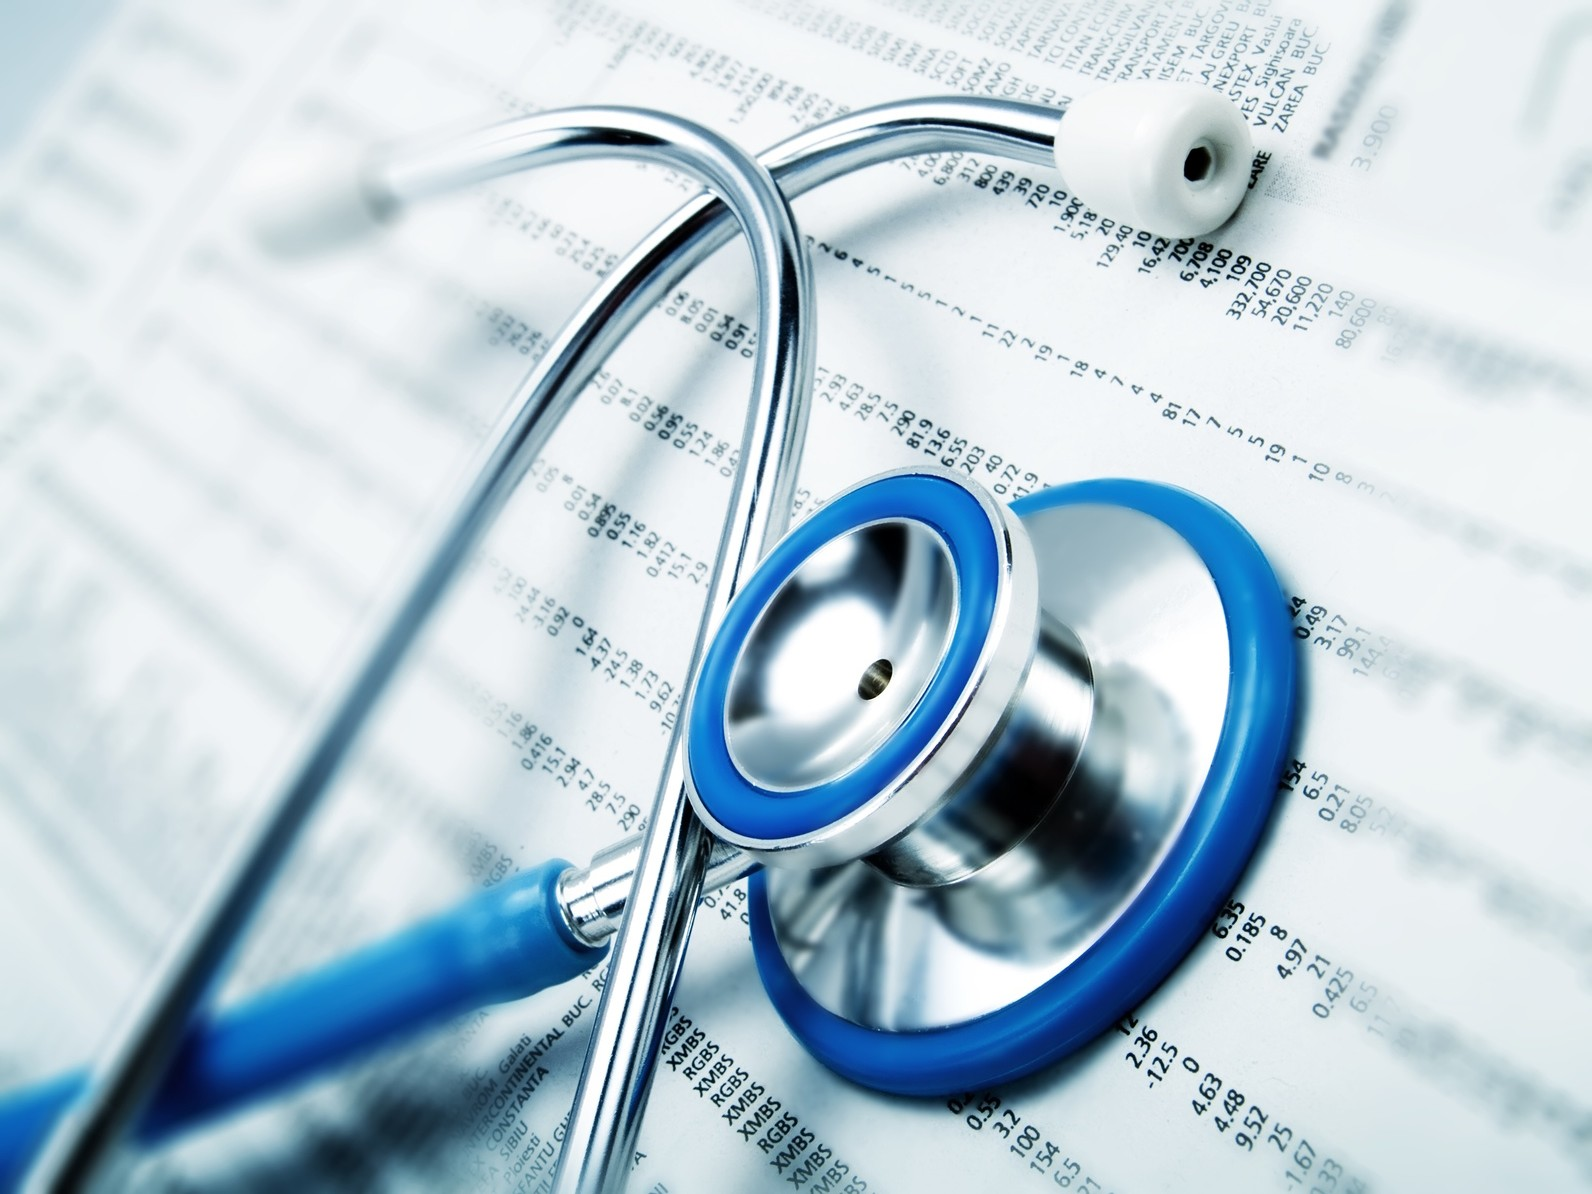 Healthcare Analytics Global Market estimated to be worth $33.5 billion by 2022